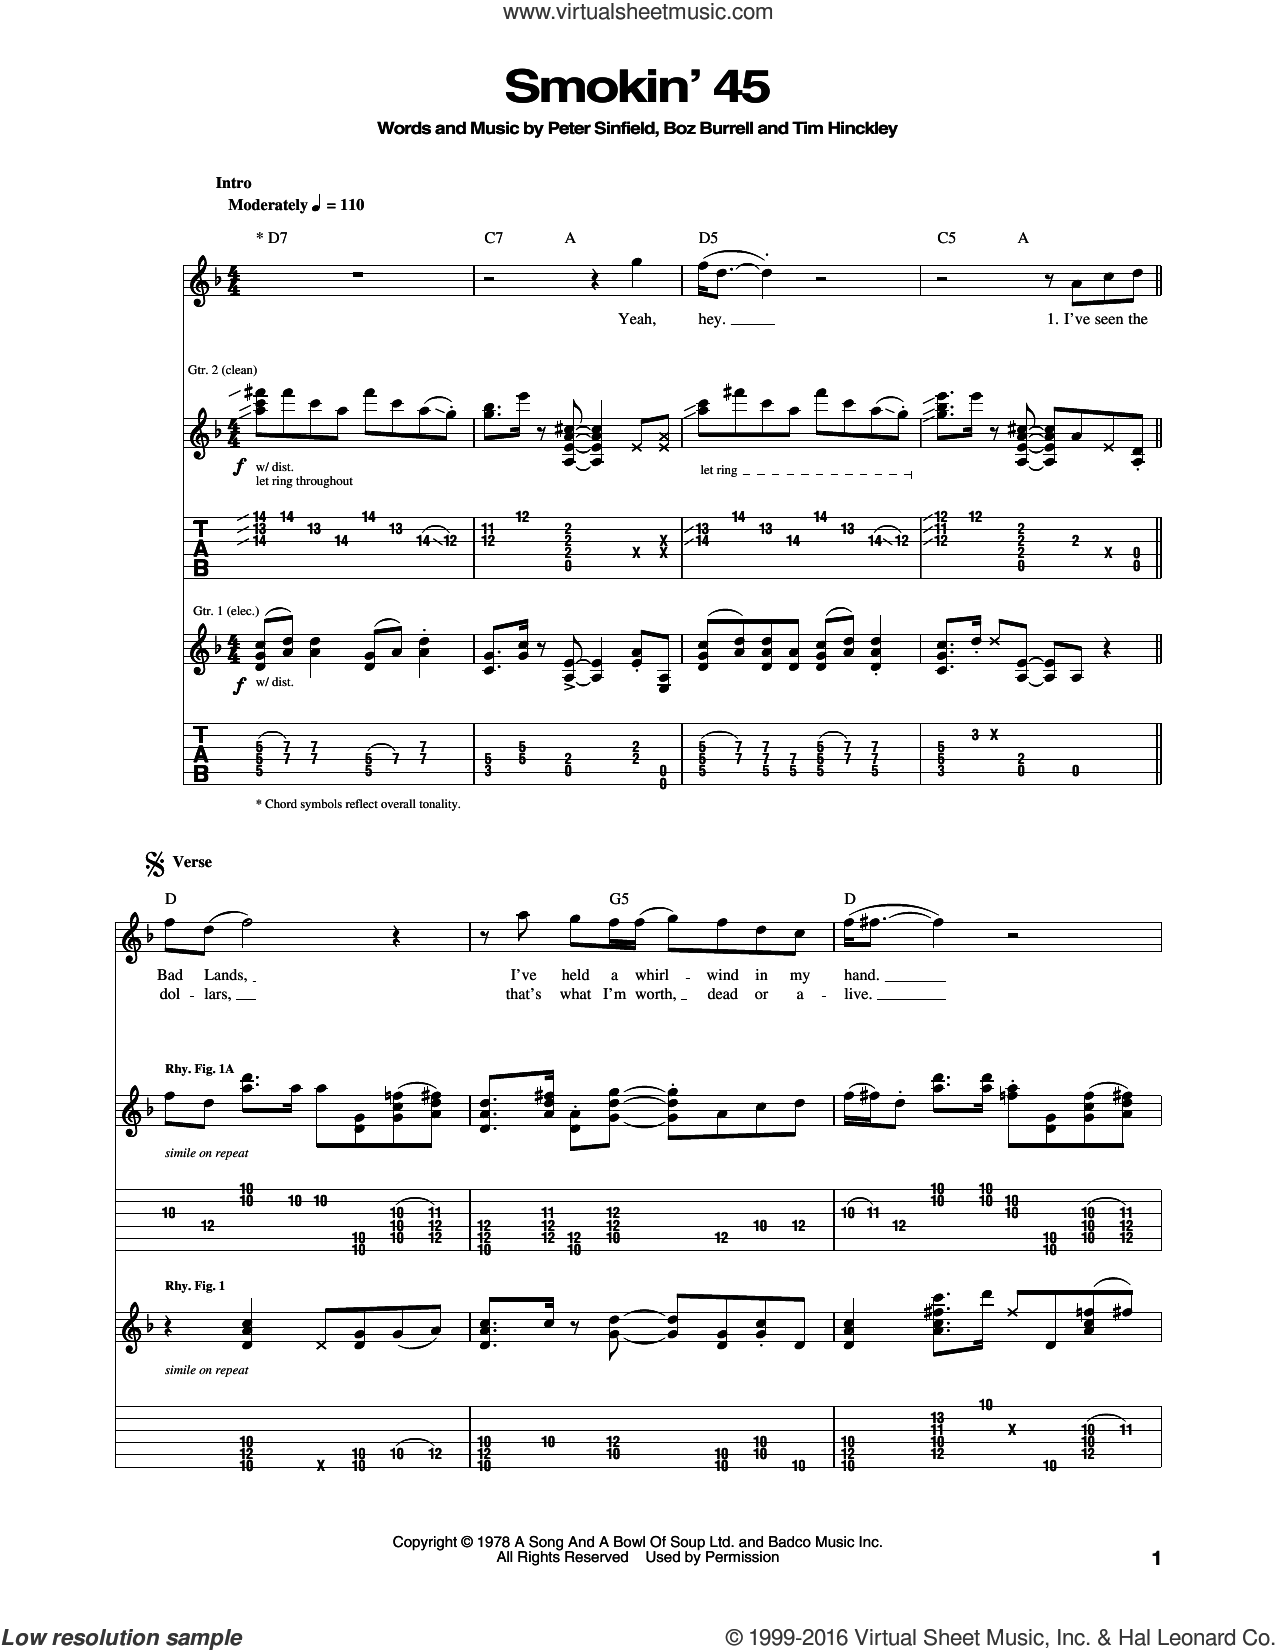 Smokin' 45 sheet music for guitar (tablature) by Bad Company, Boz Burrell, Peter Sinfield and Tim Hinckley, intermediate skill level